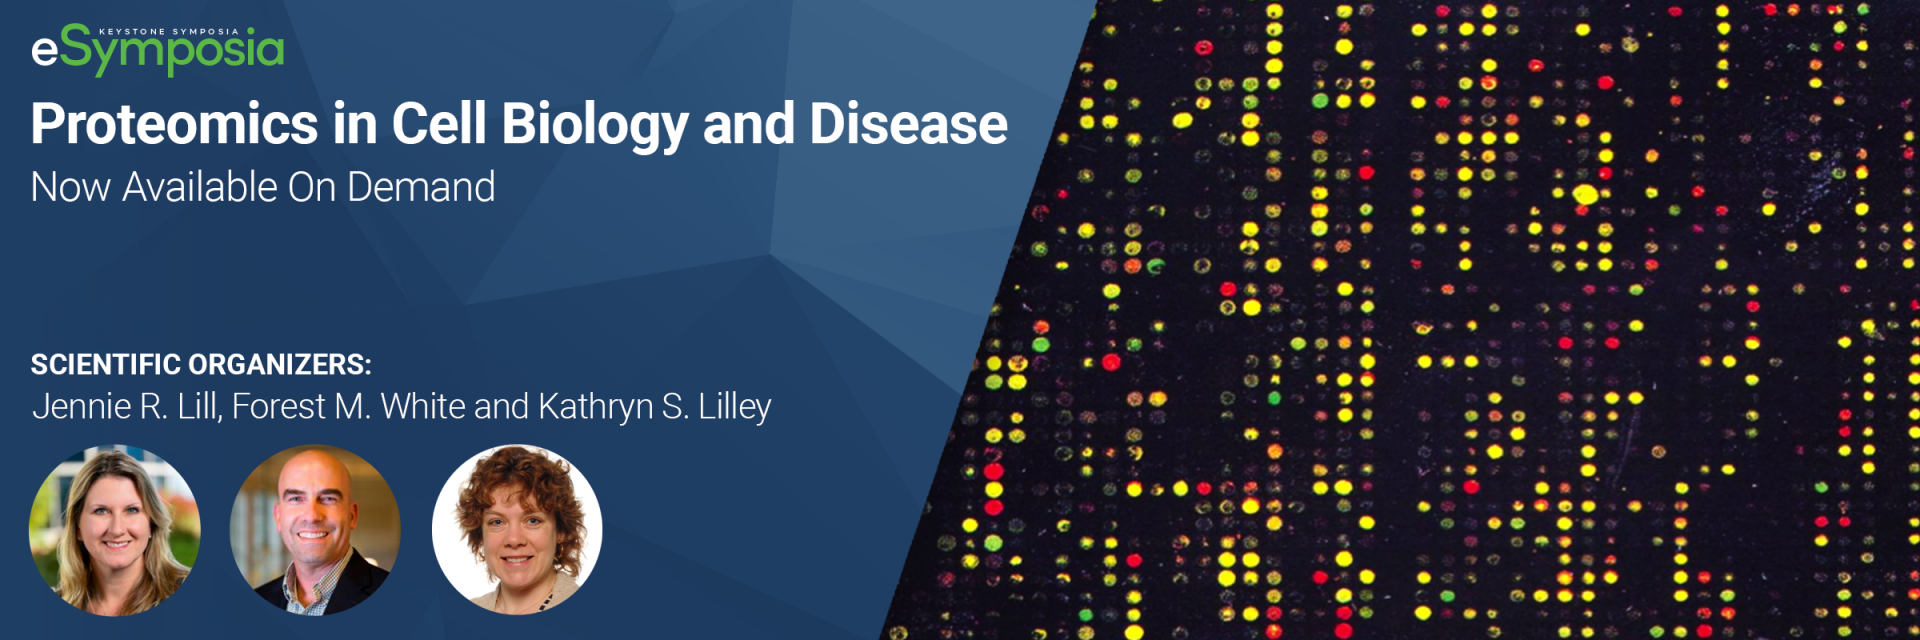 Proteomics in Cell Biology and Disease